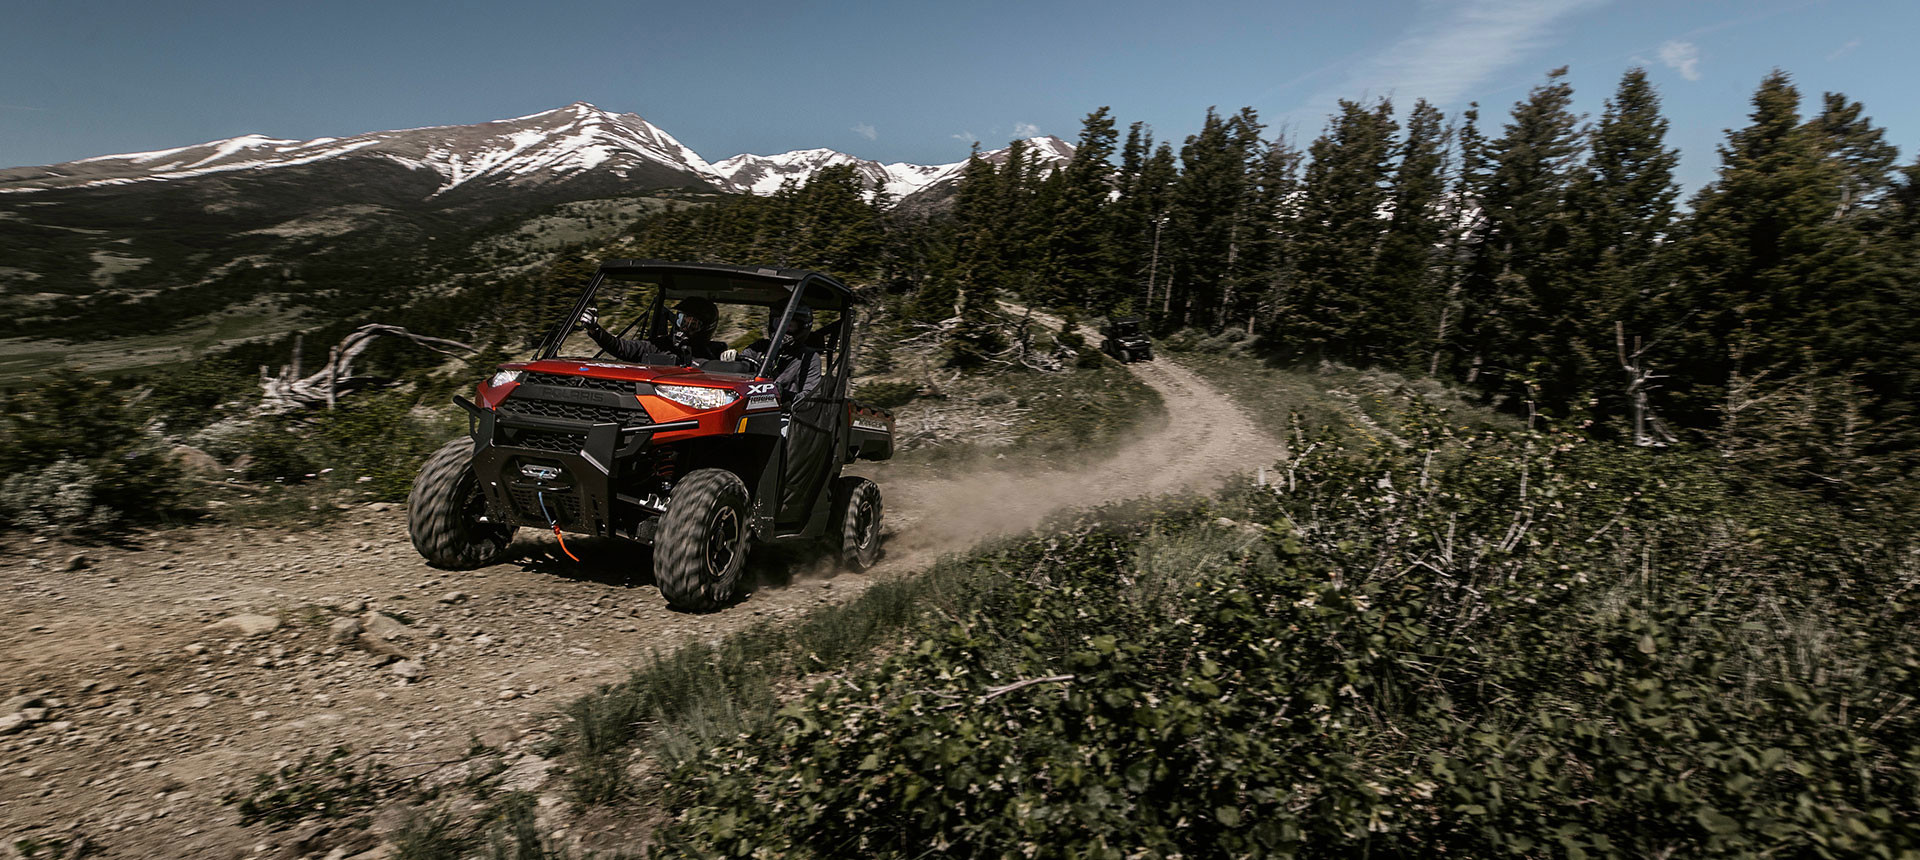 2020 RANGER® XP 1000 High Lifter Edition Instagram image 11